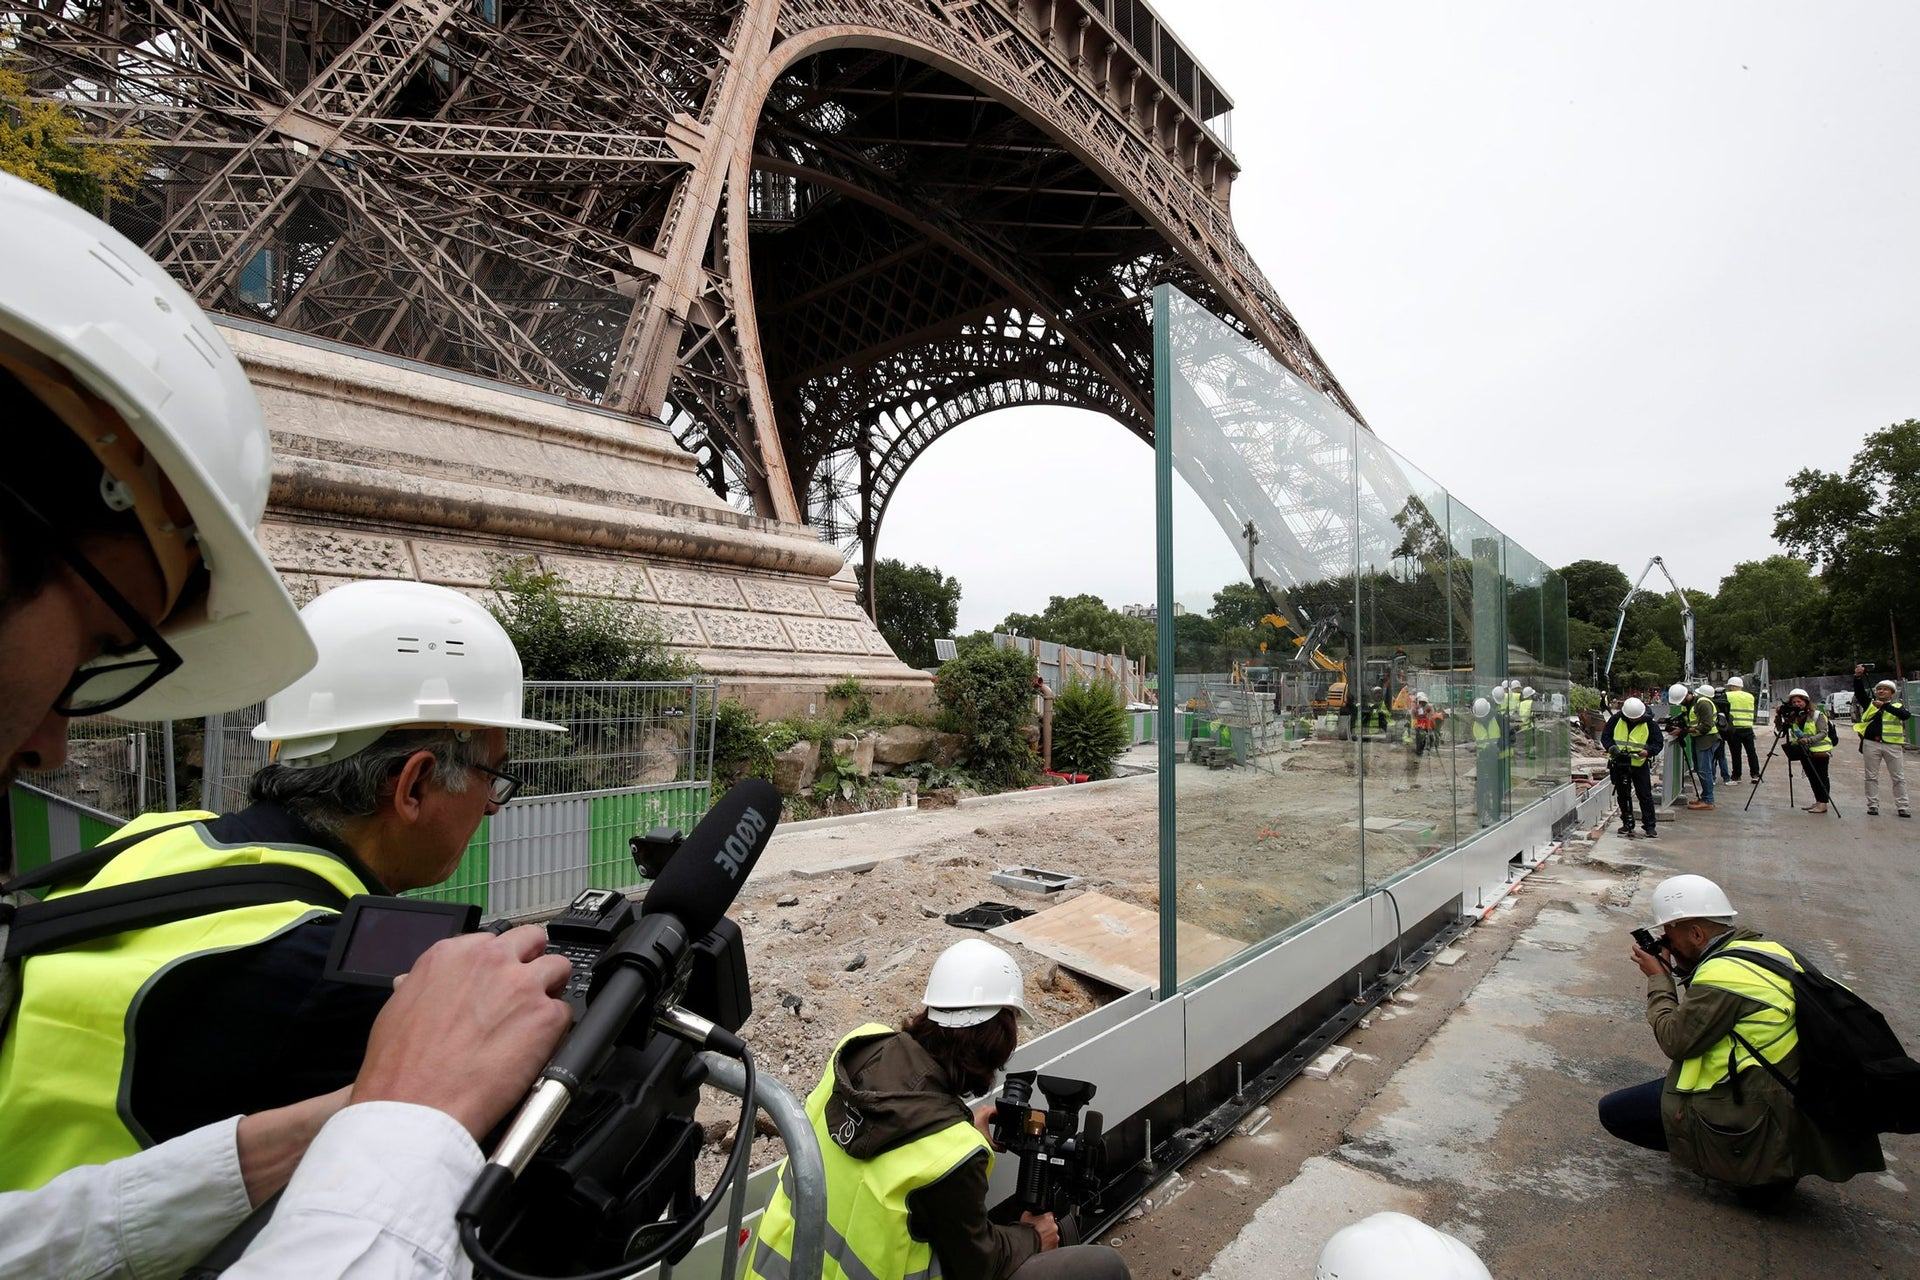 Members of the media make images of the new glass security fence which is under construction around the Eiffel Tower in Paris, France, June 14, 2018.